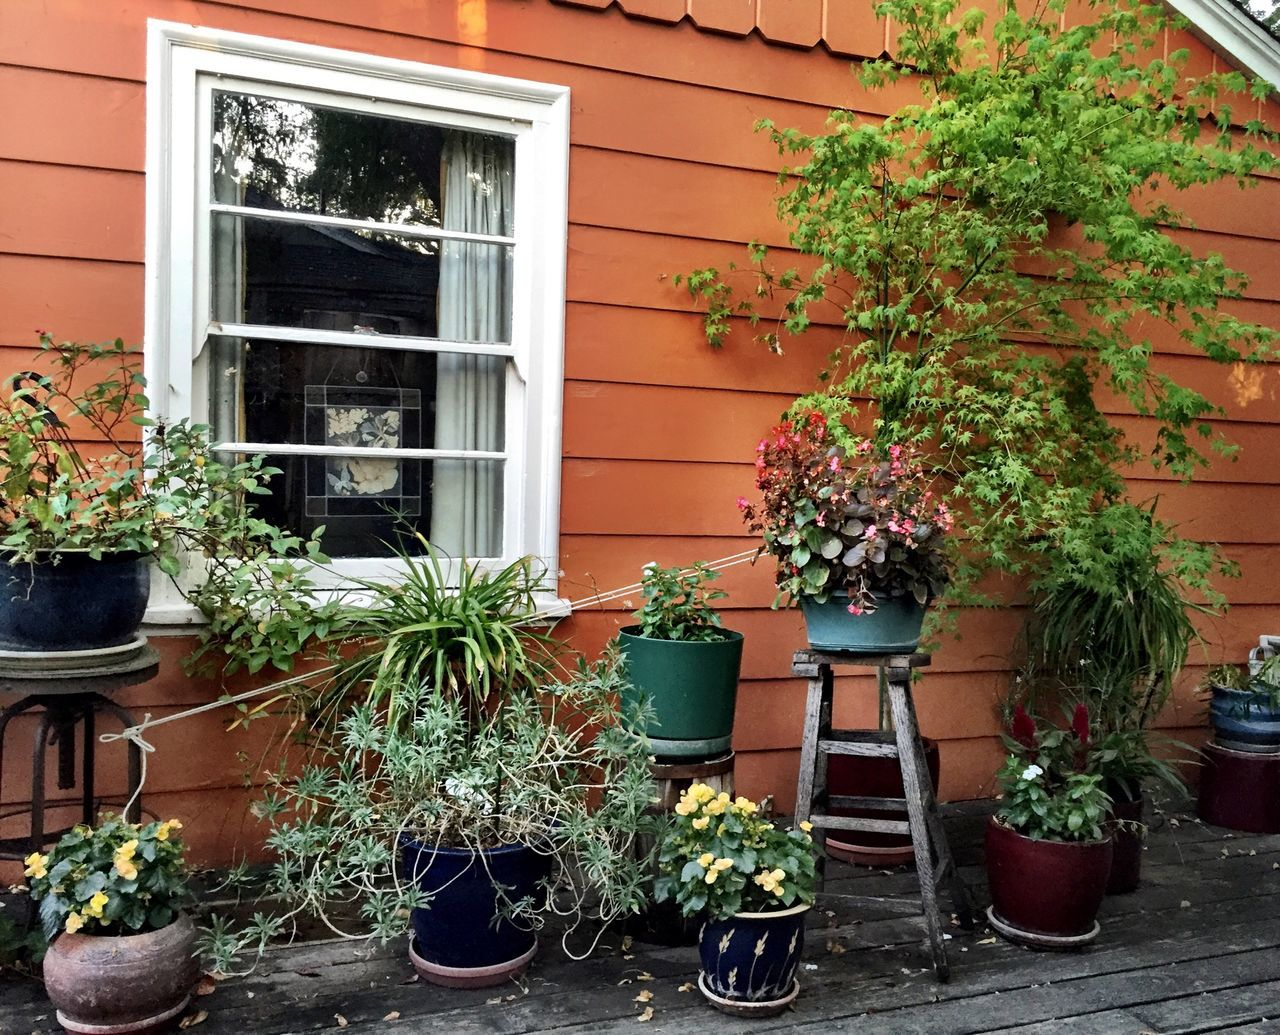 plant, growth, potted plant, house, window, architecture, flower, building exterior, window box, outdoors, no people, nature, day